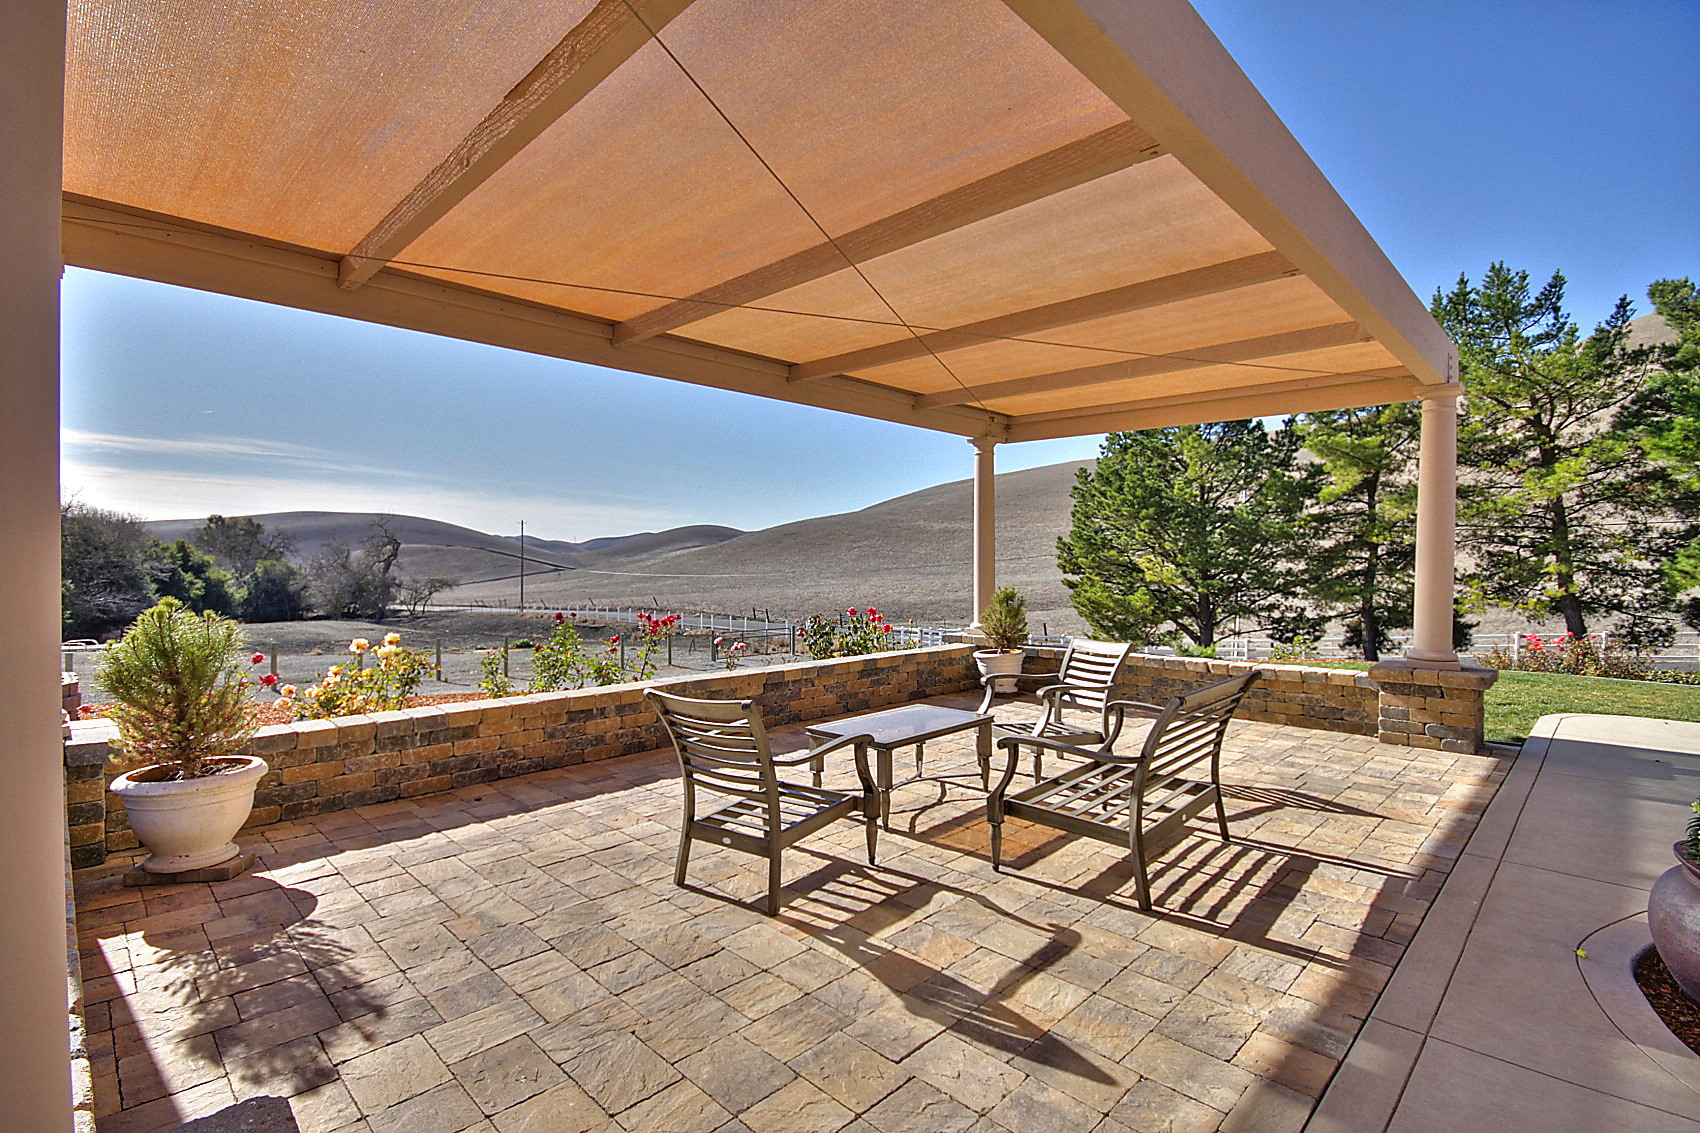 3 Bedroom Equestrian Home in Livermore, CA